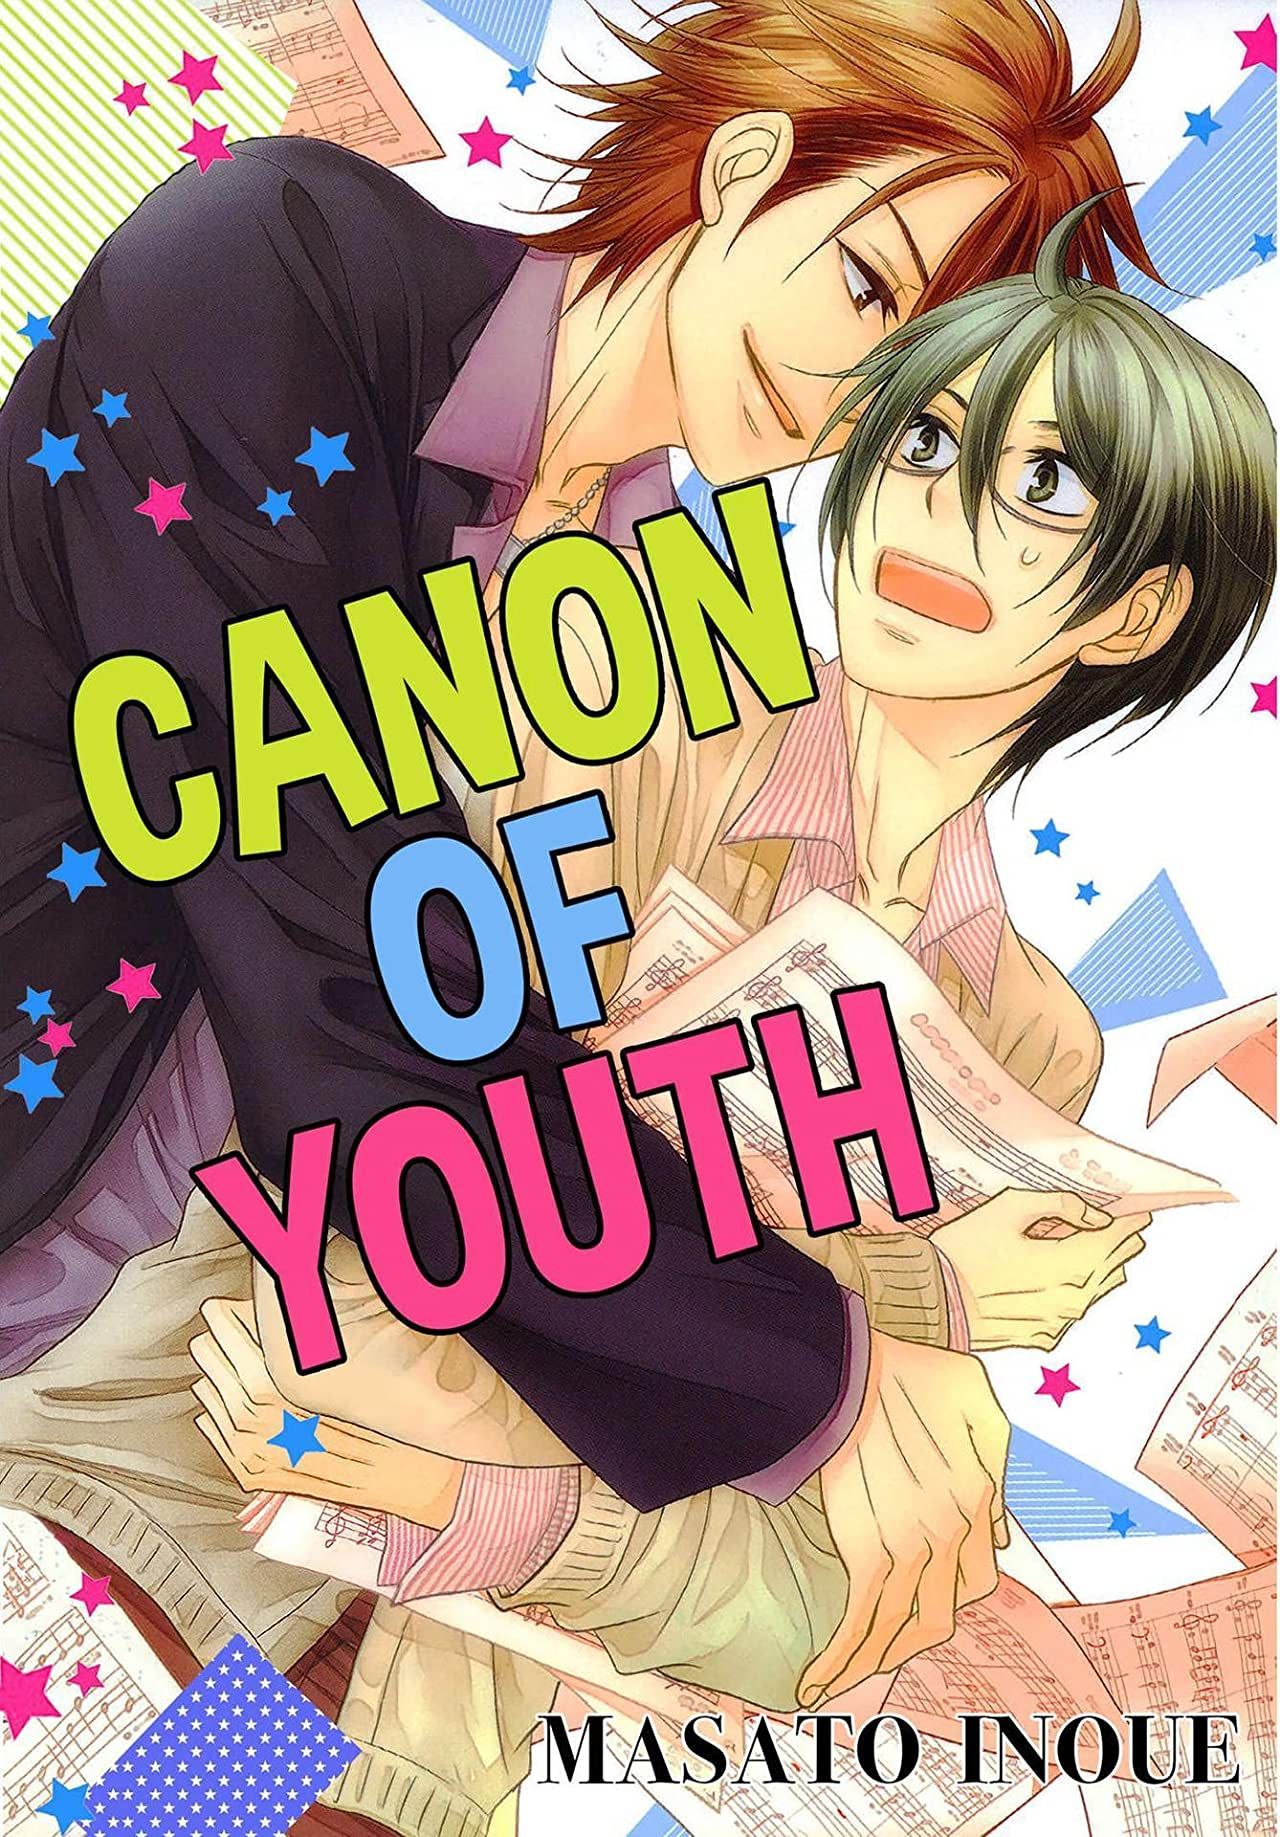 Canon of Youth (Yaoi Manga) Vol. 1